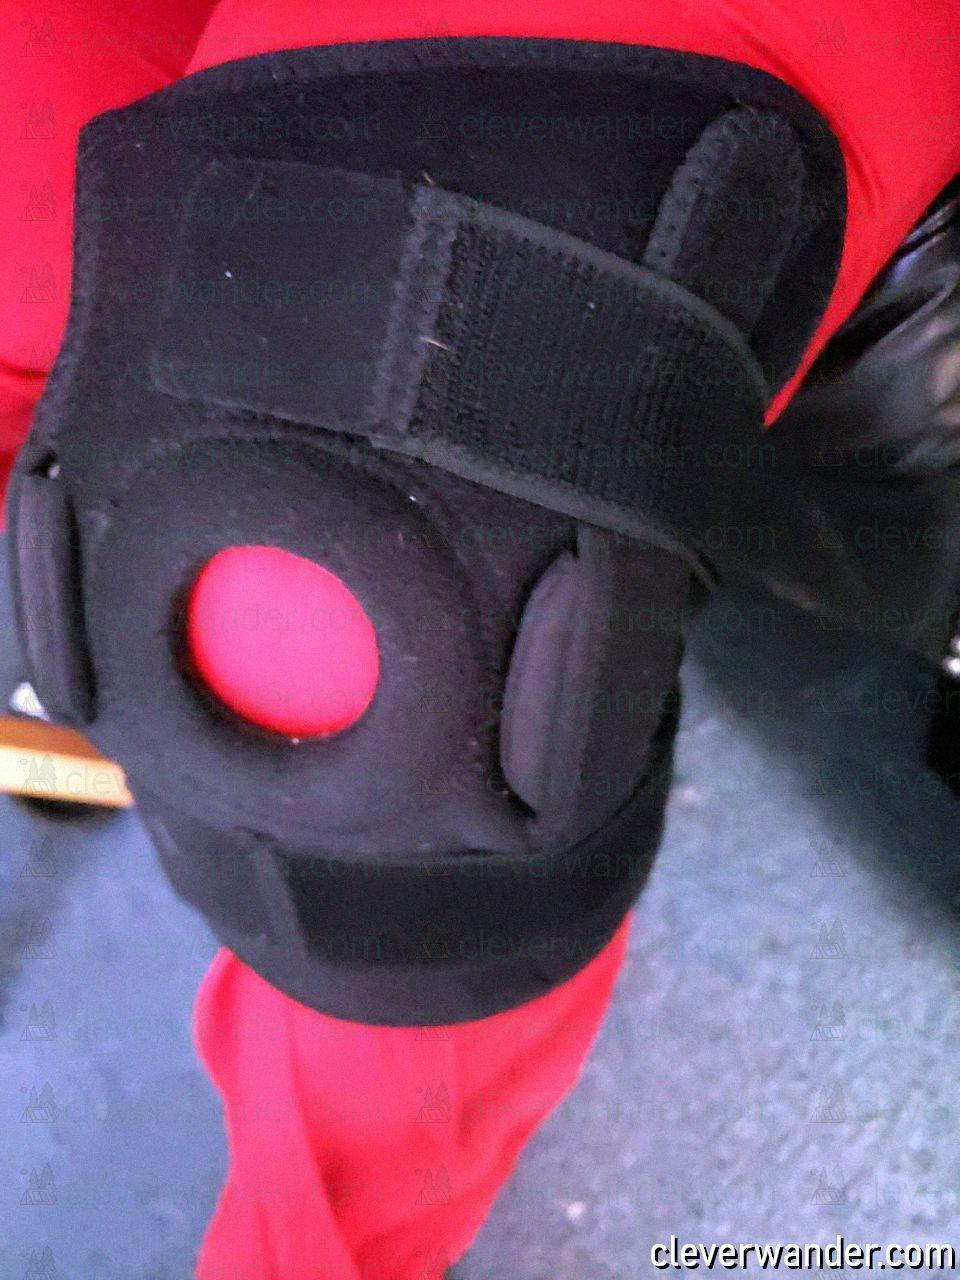 Vive Hinged Knee Brace - image review 1